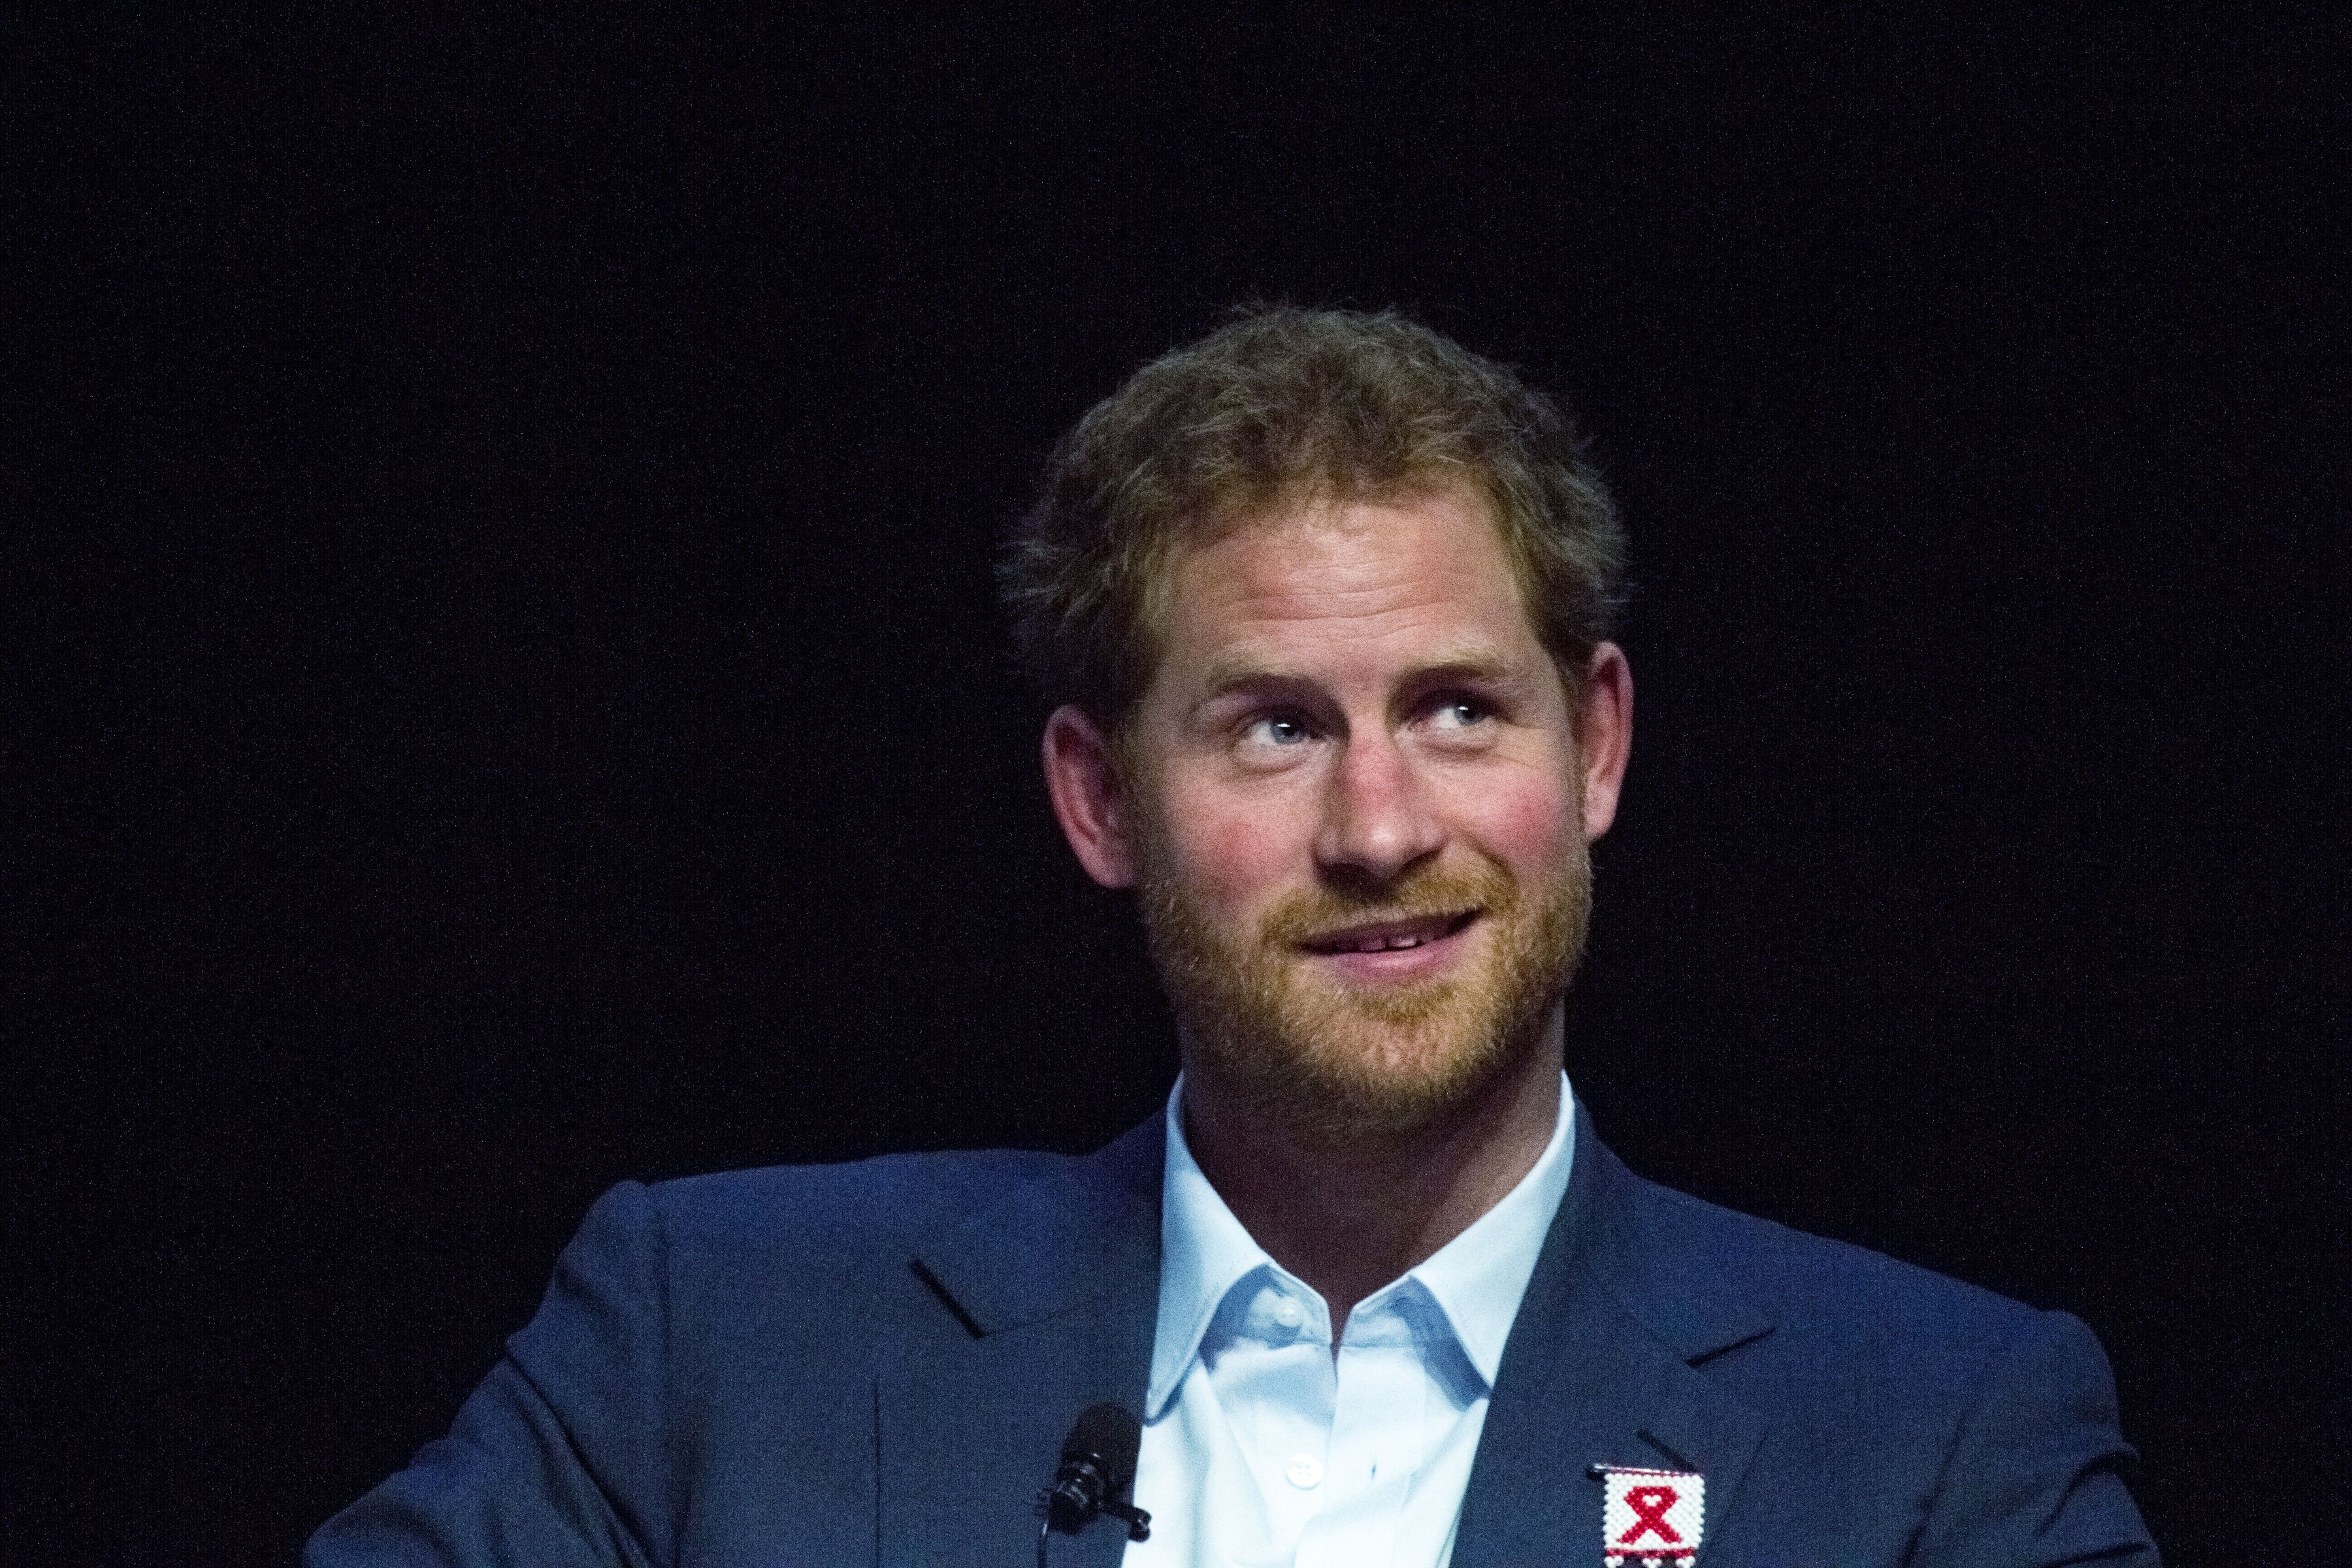 Prince Harry attends the International Aids Confer